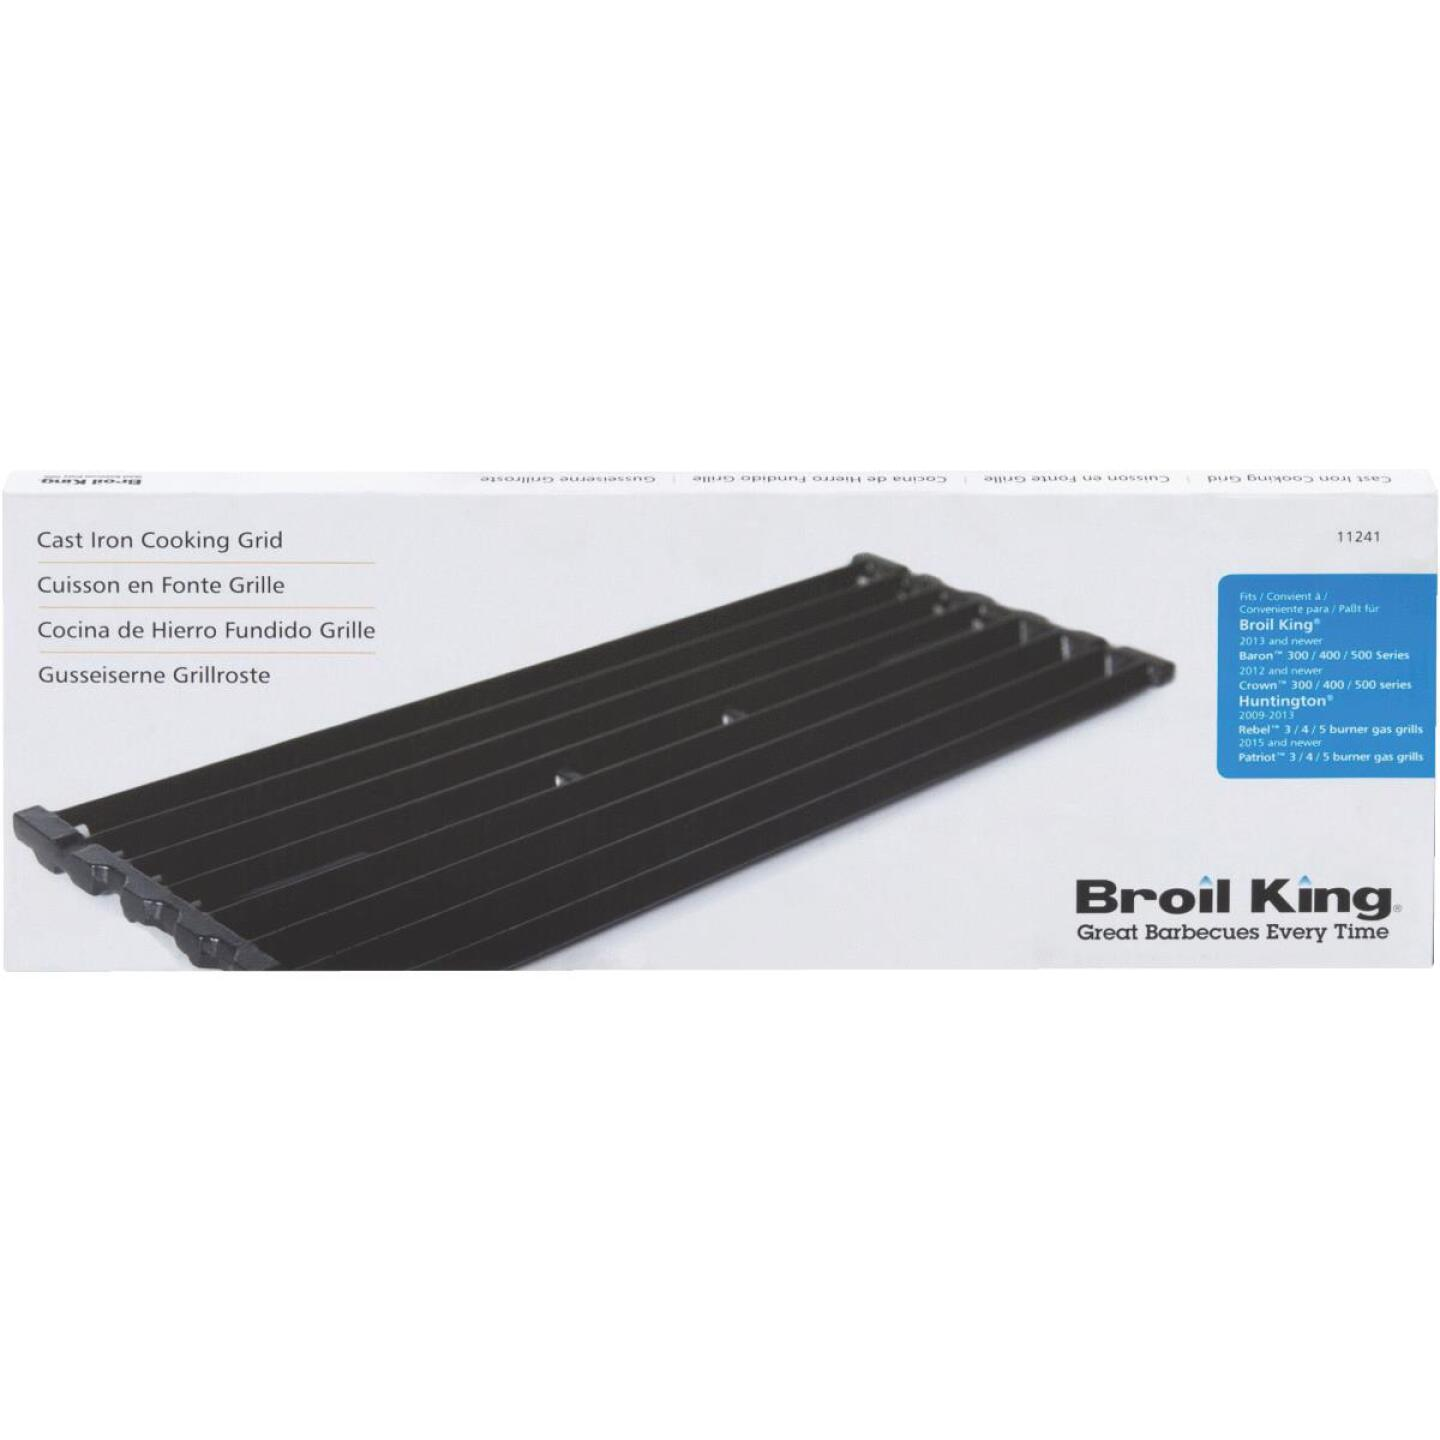 Broil King 6.17 In. x 17.48 In. Cast Iron Cooking Grid Image 2